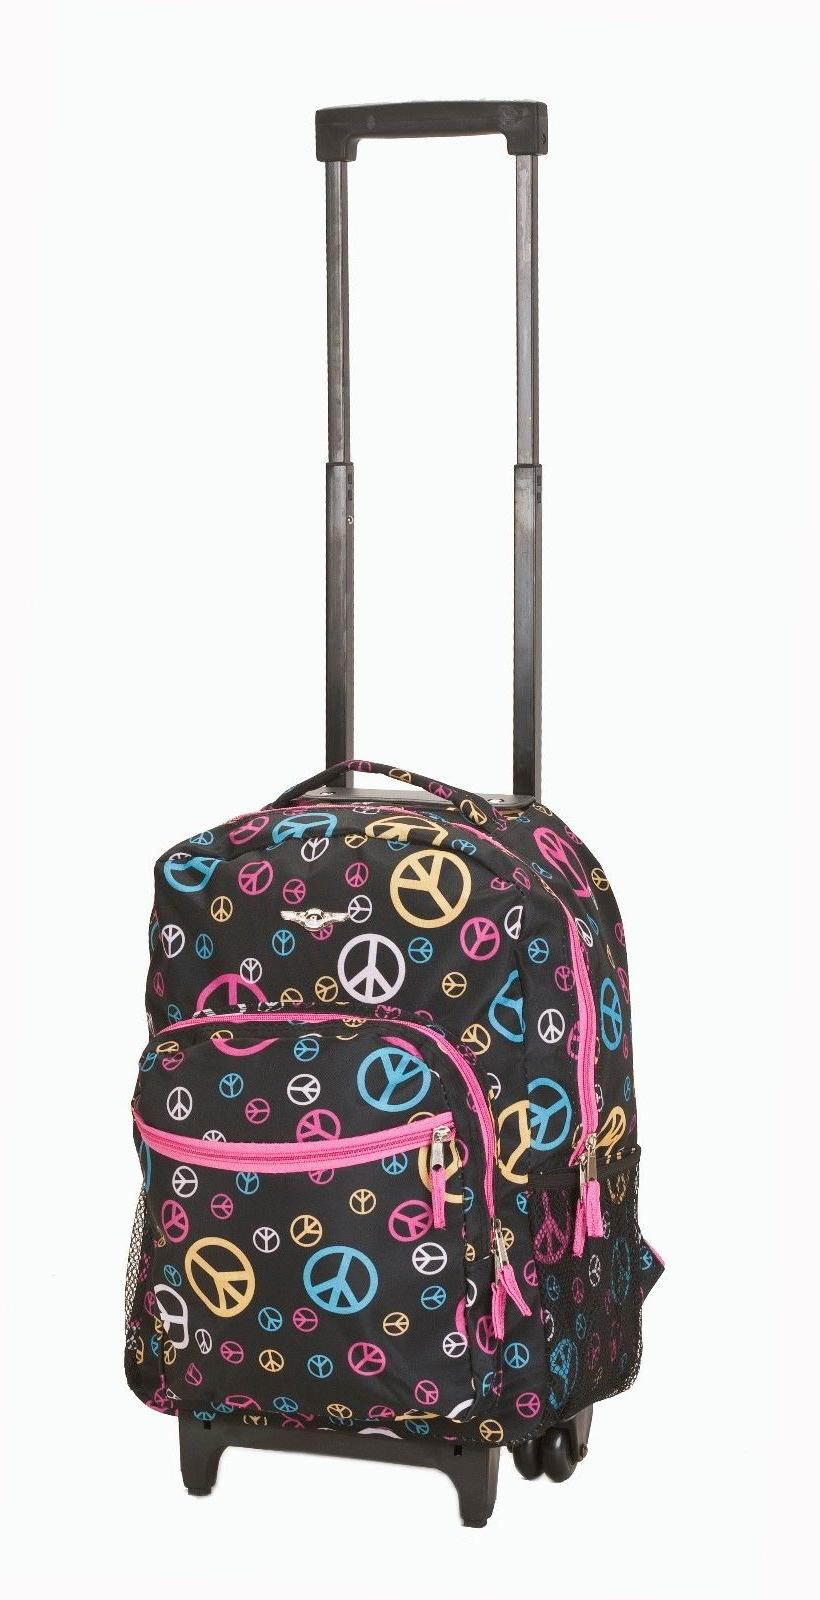 "Deluxe Backpack 17"" Travel Luggage Travel Bag"